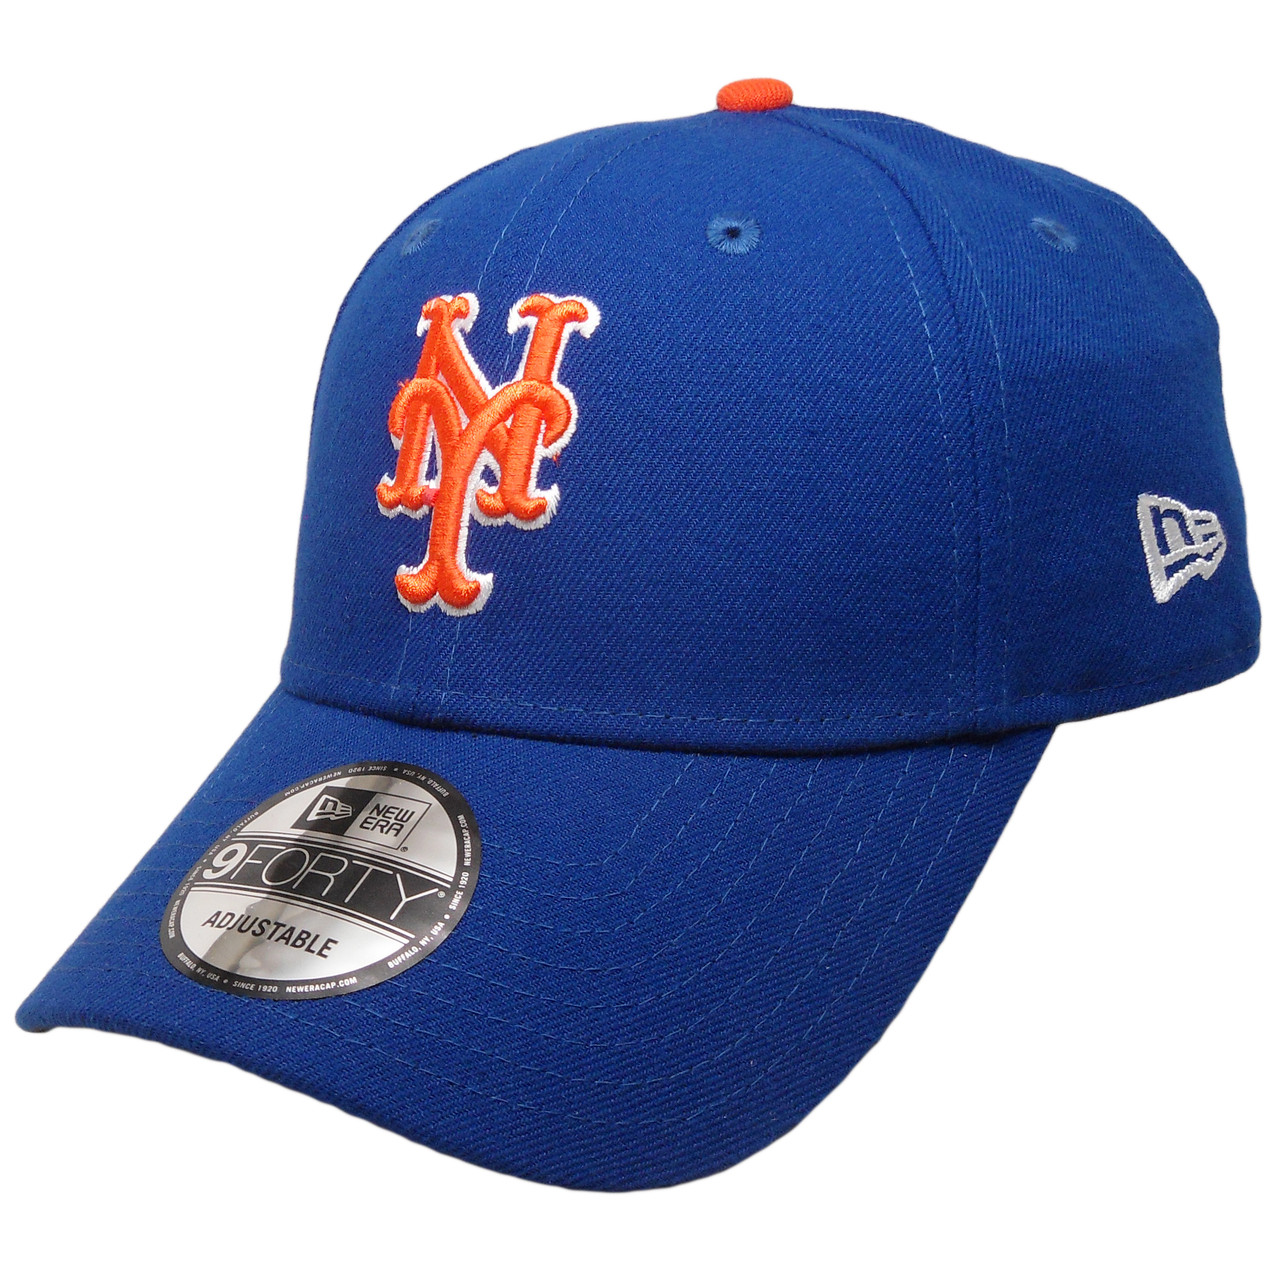 detailed look 0f1dd adbd3 New York Mets New Era The League 9Forty Adjustable Hat - Royal, Orange,  White - ECapsUnlimited.com